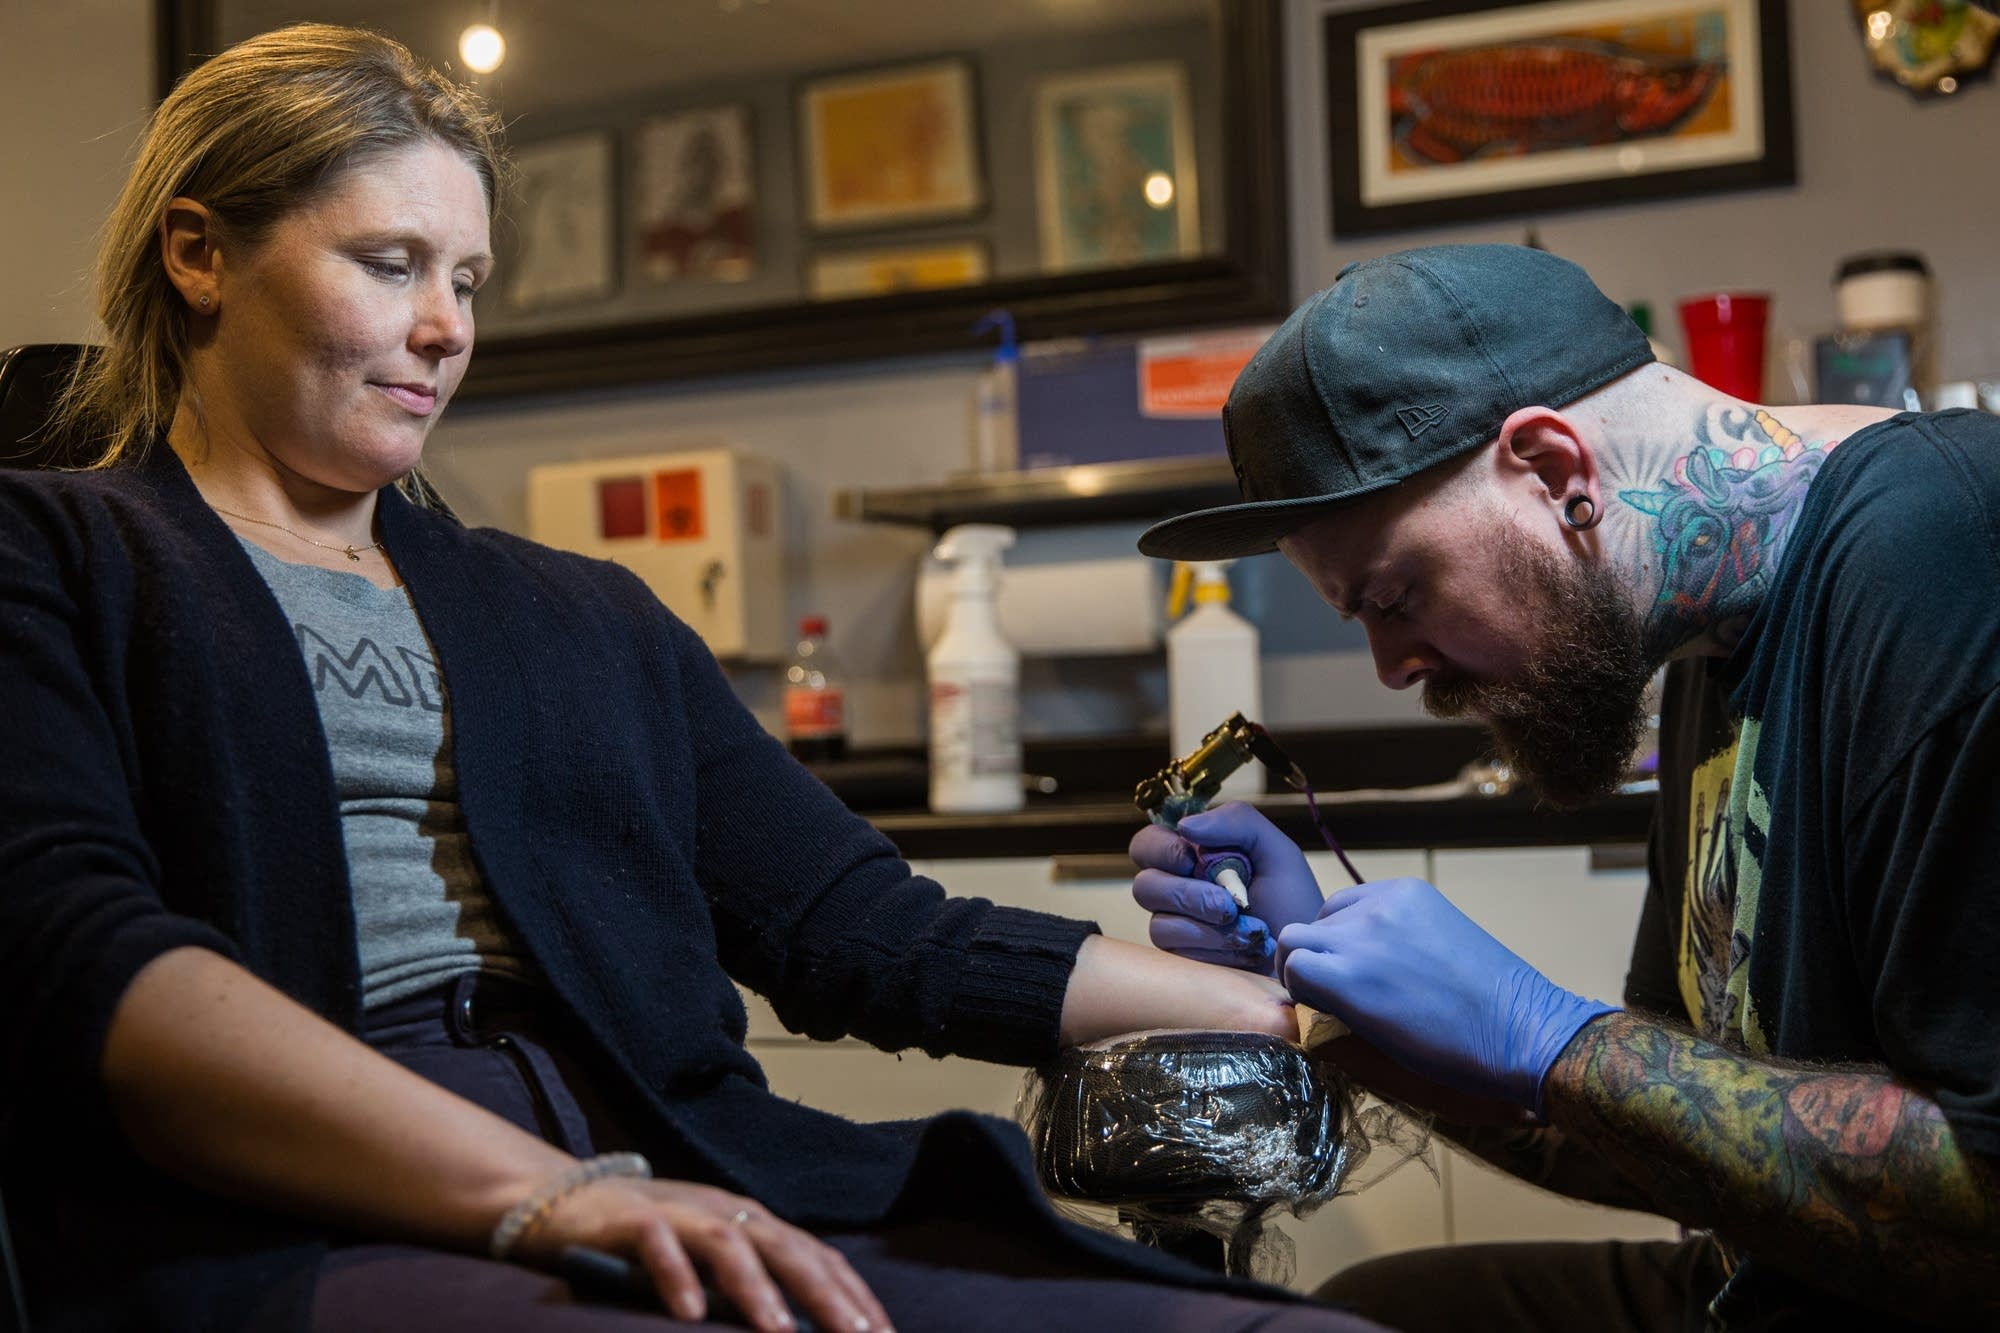 \'She persisted\': Women pack Mpls. tattoo shop for solidarity in ink ...